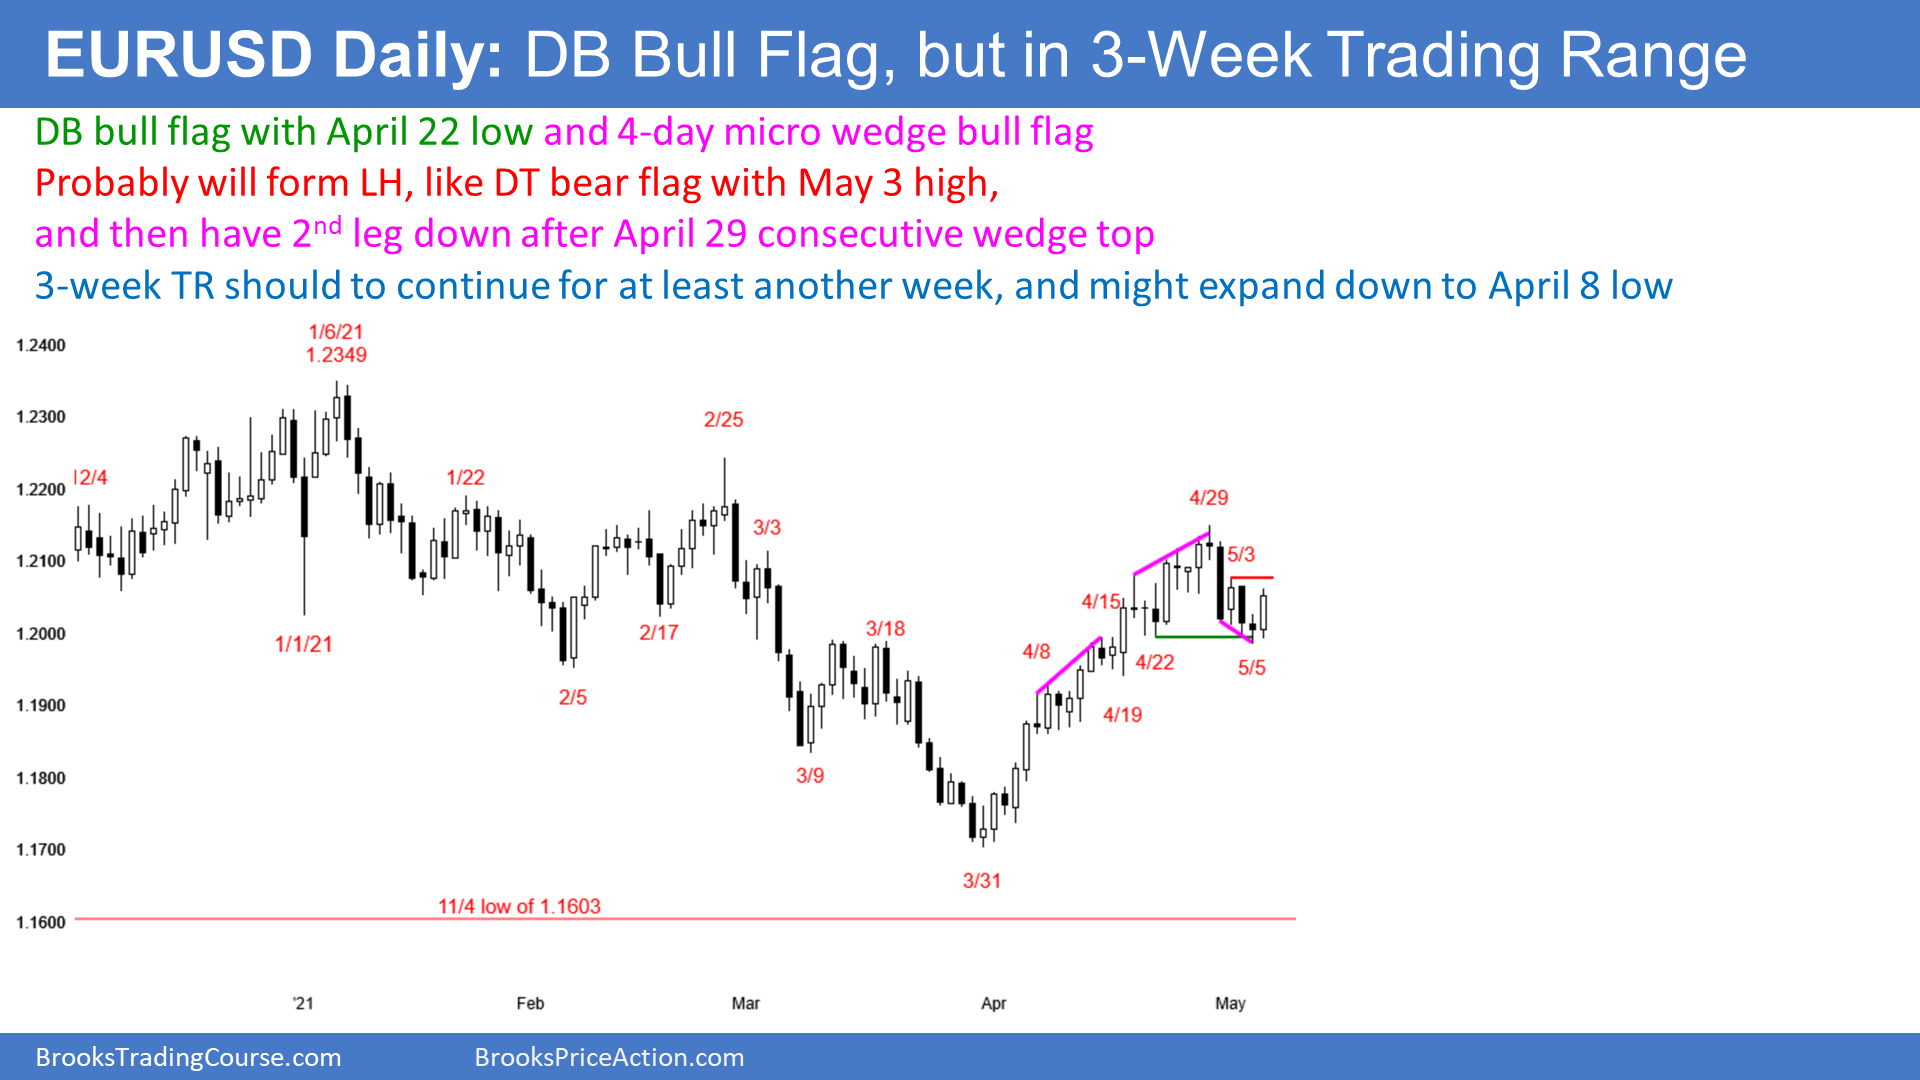 EUR/USD: DB Bull Flag, Strong Breakout Probable